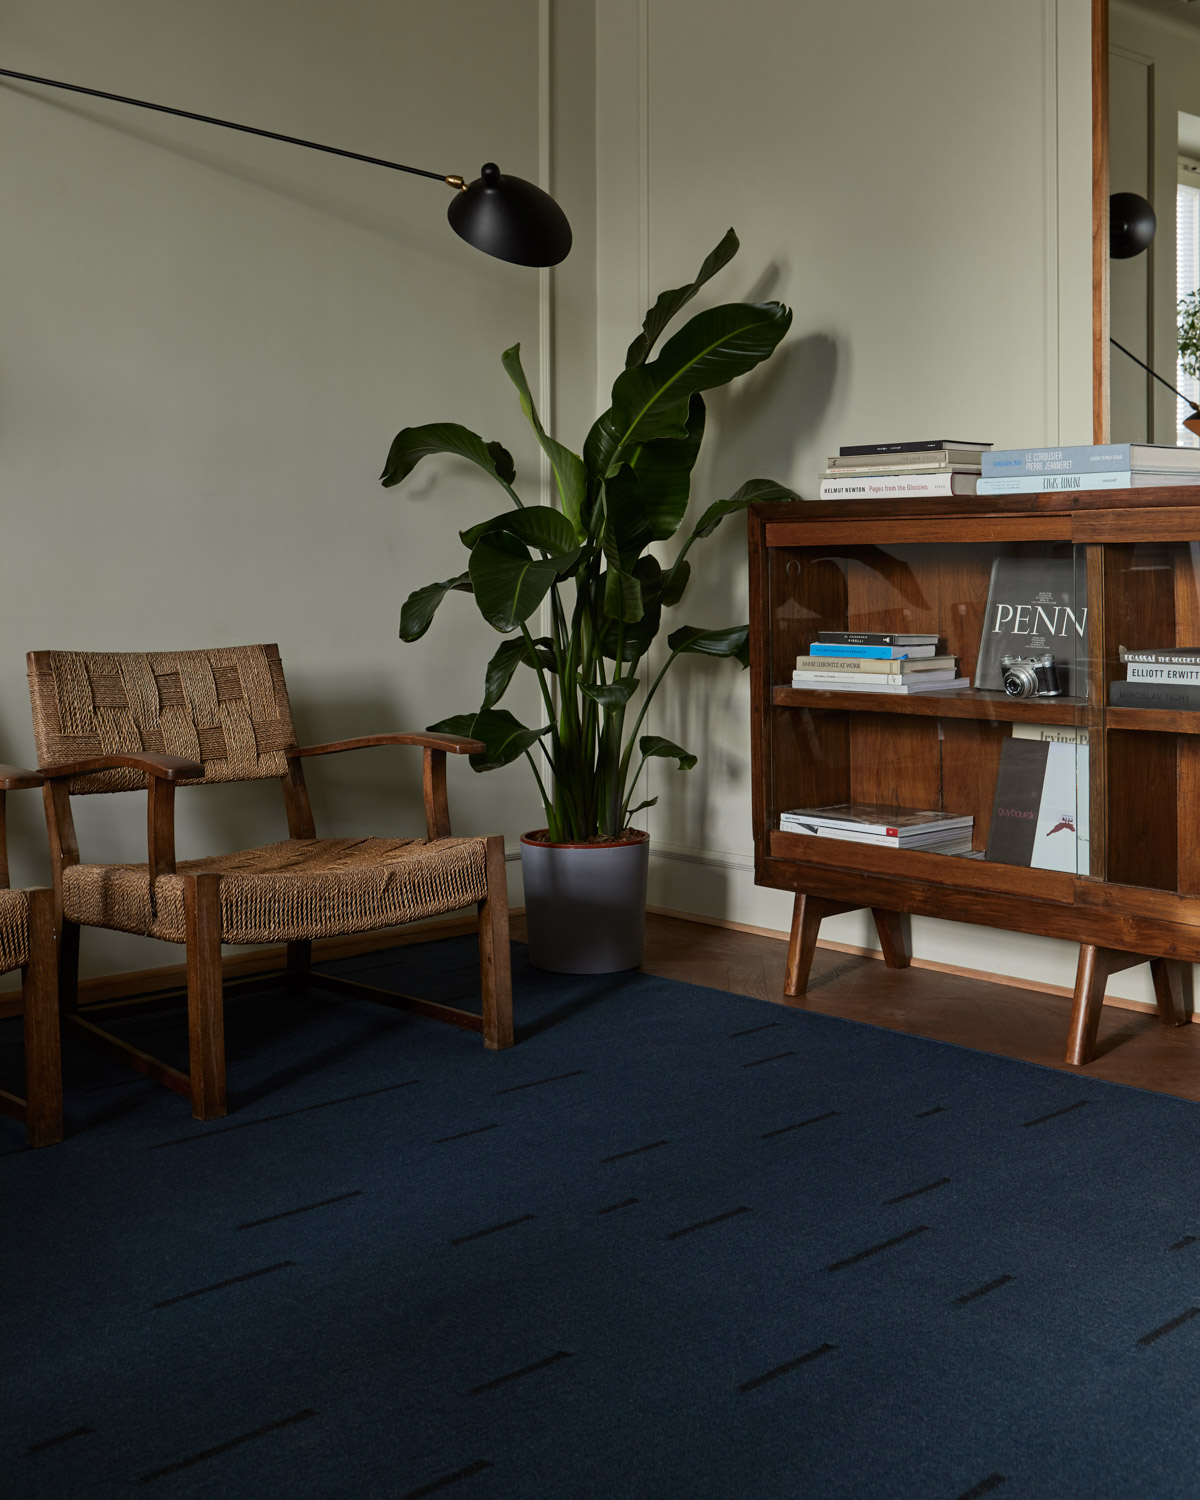 The Rain flat-weave rug in Teal in a Stockholm apartment with vintage decor.